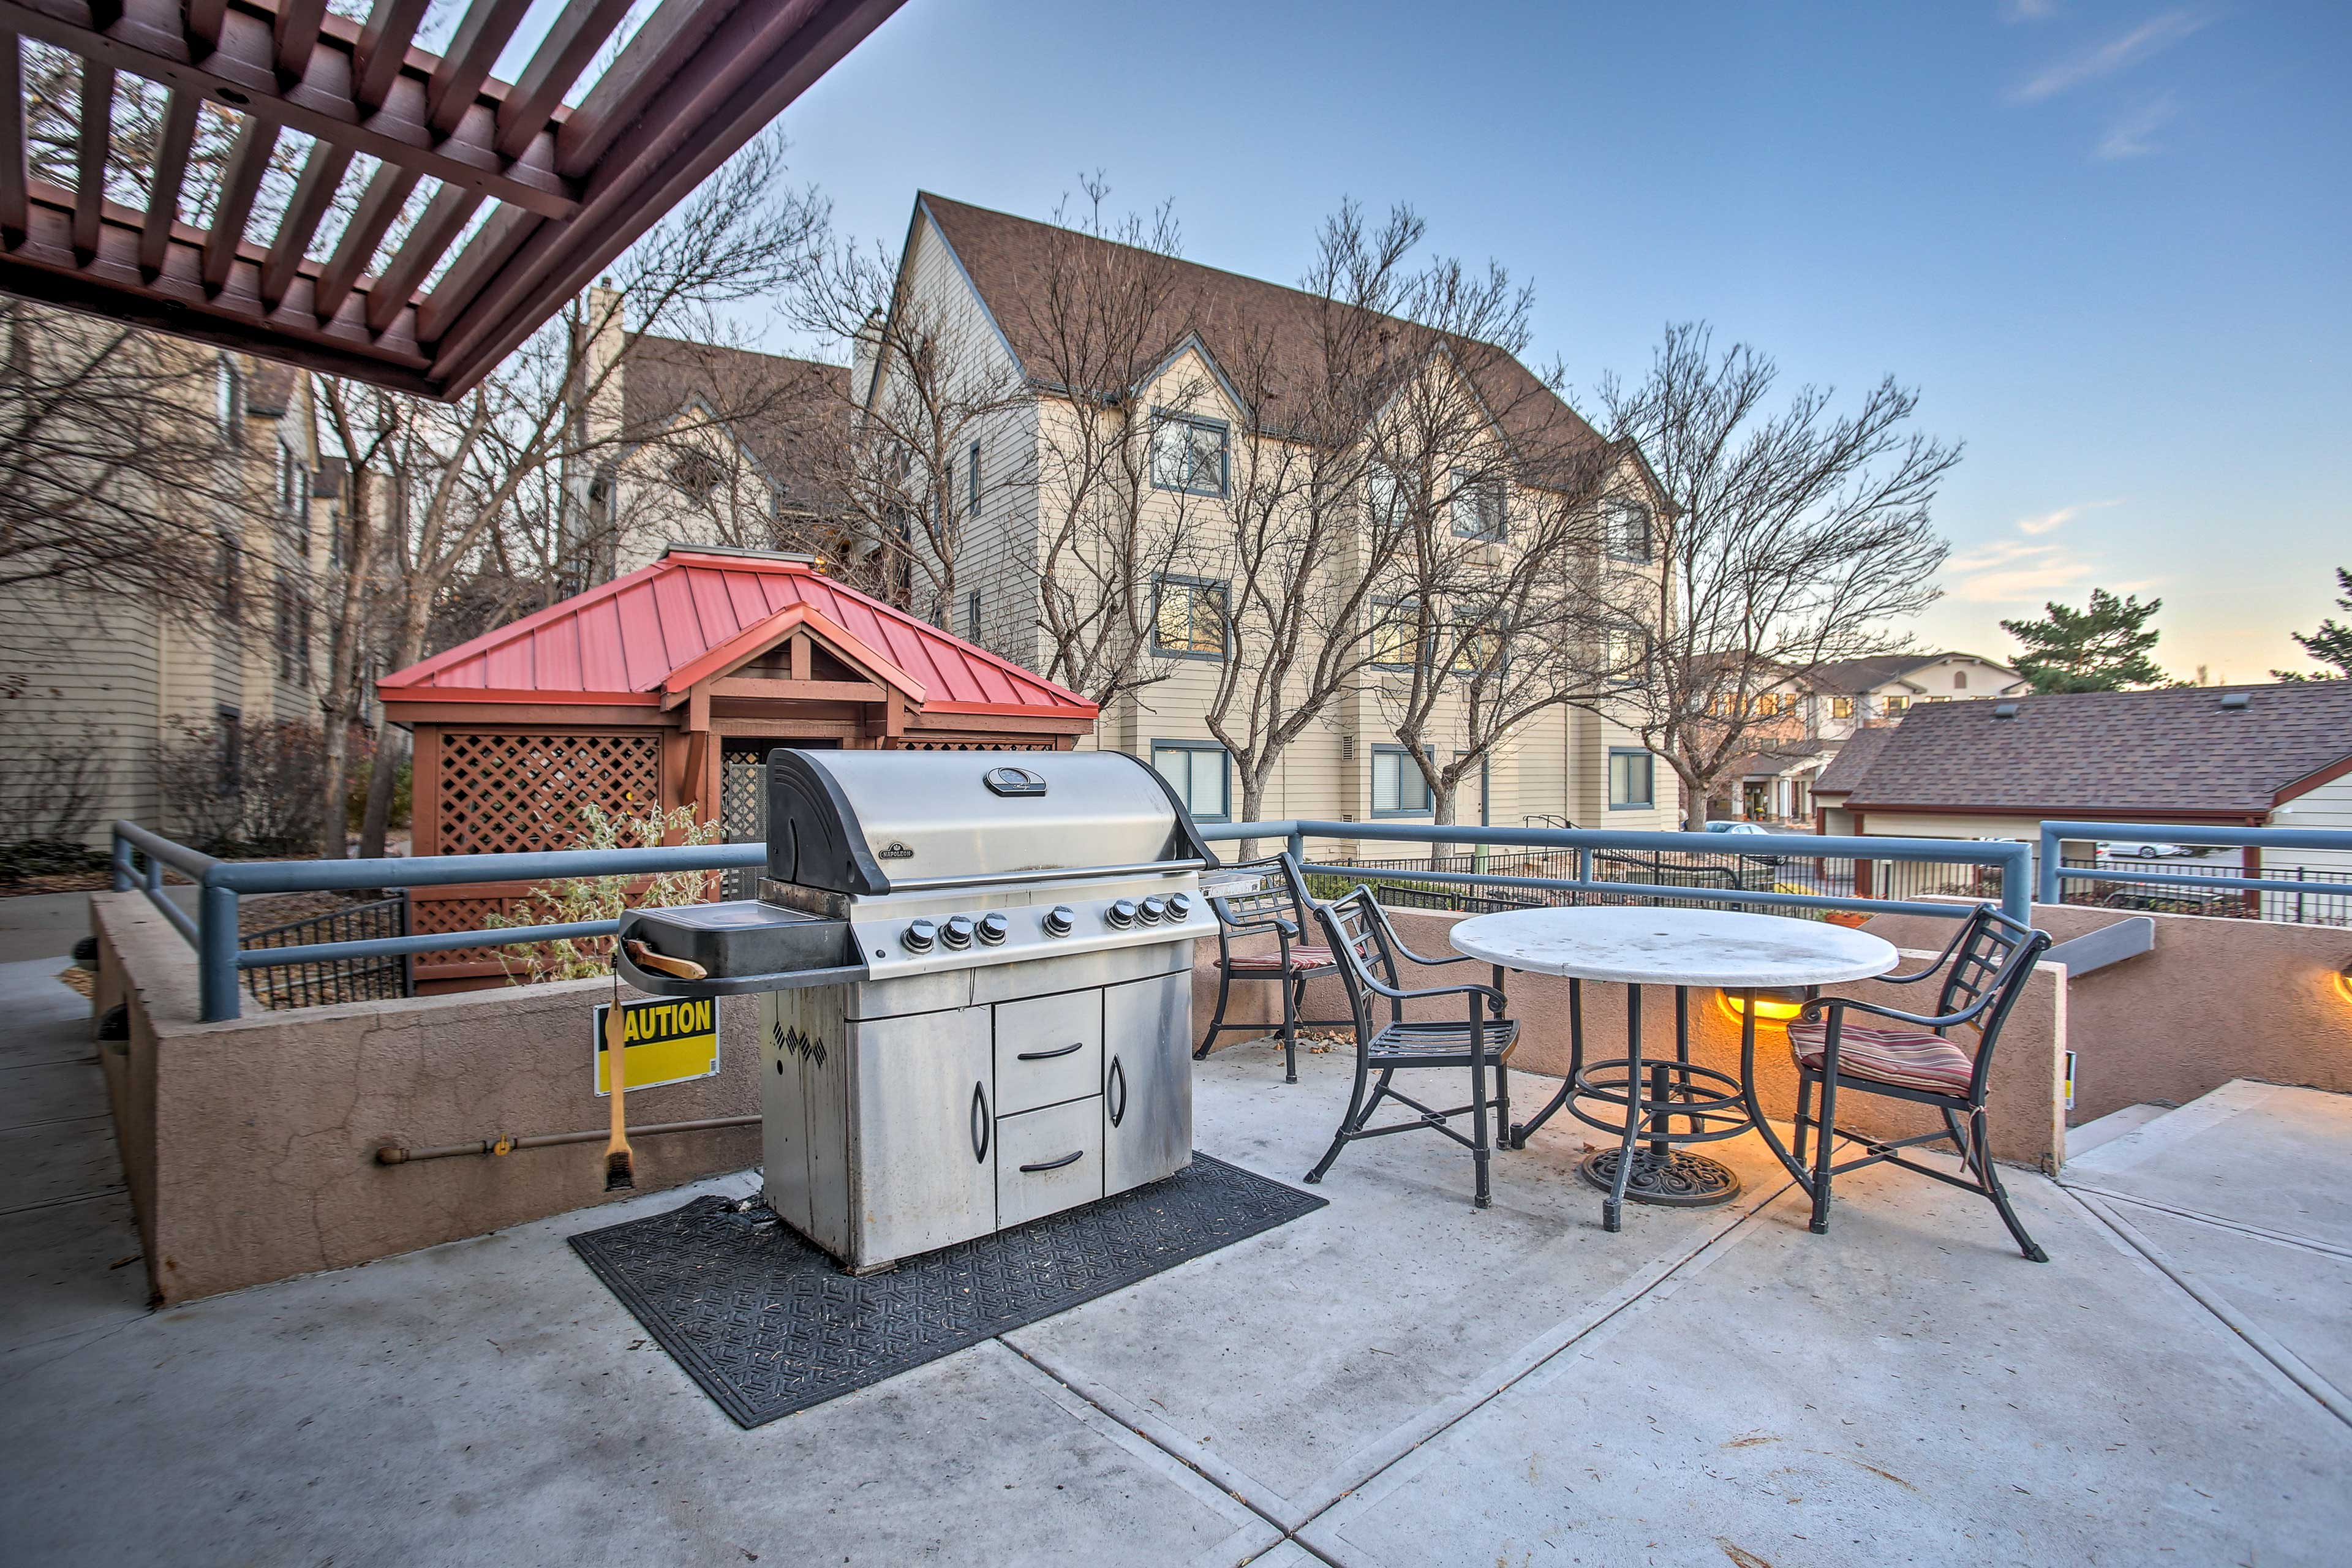 Enjoy on-site peks like a barbecue deck, community pool, fitness center and more